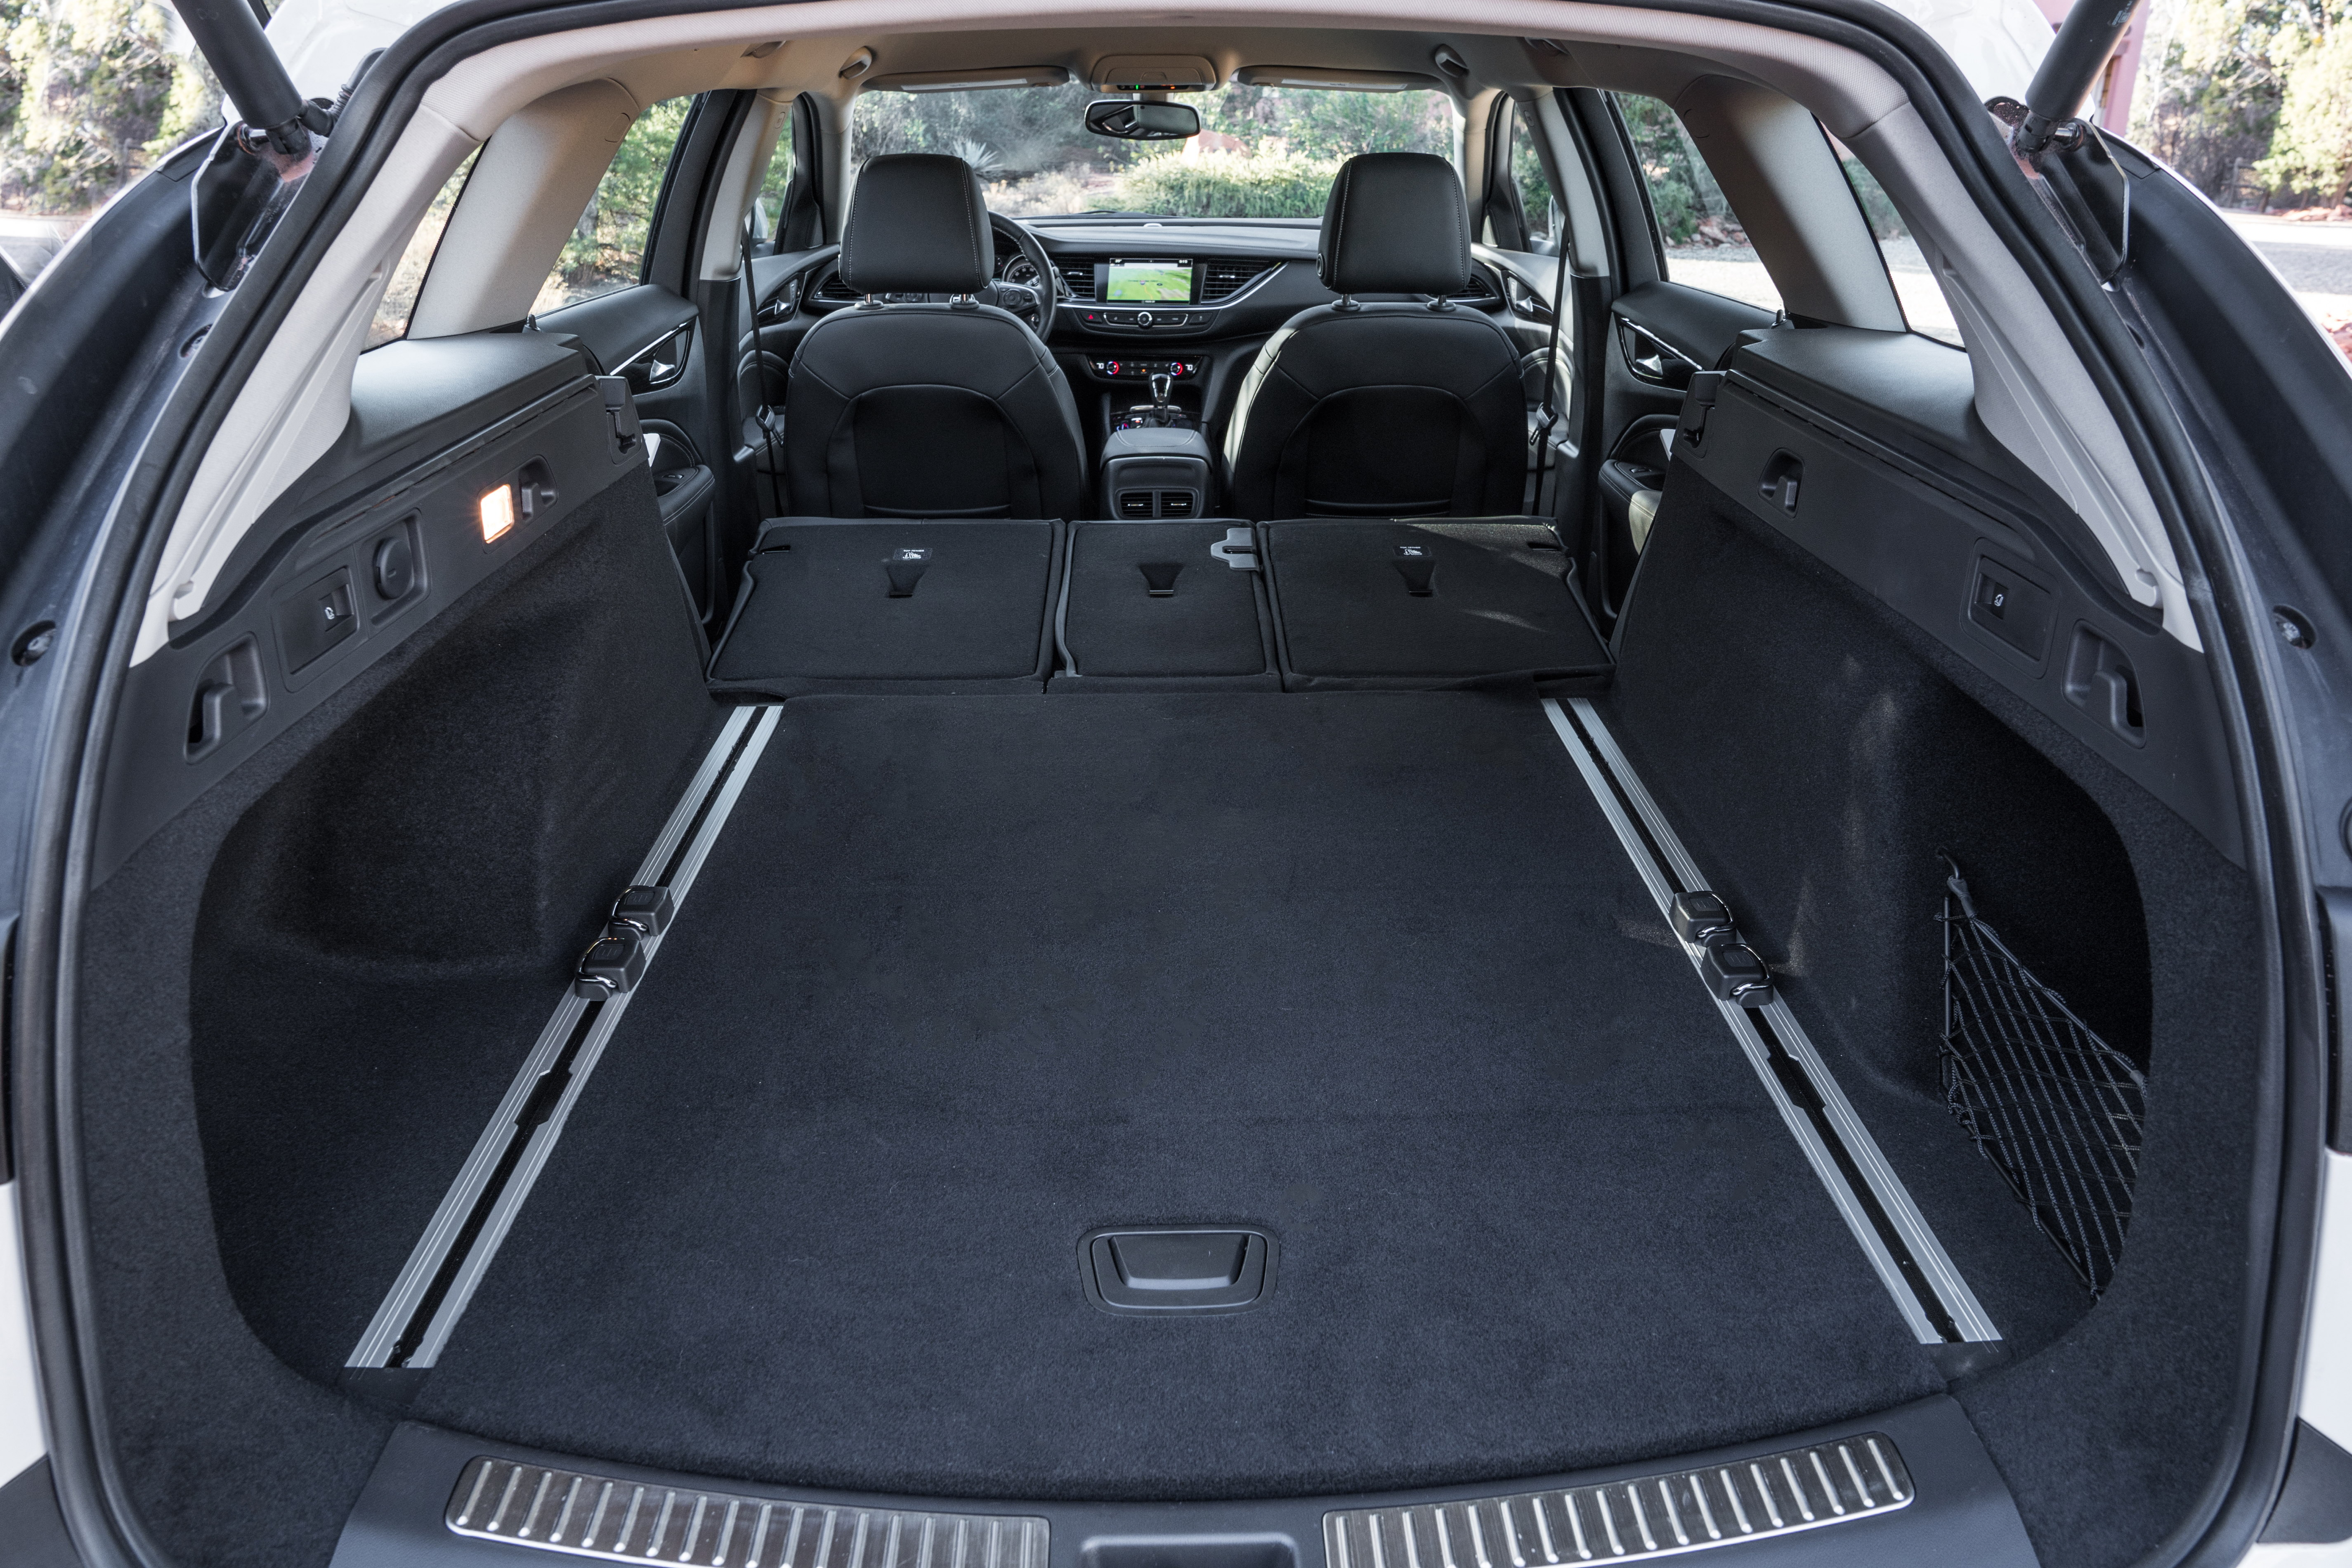 The interior of the 2018 Buick Regal TourX aims for simple but feels very plain. The seats are awesome, though, and space is generous for cargo and passengers.